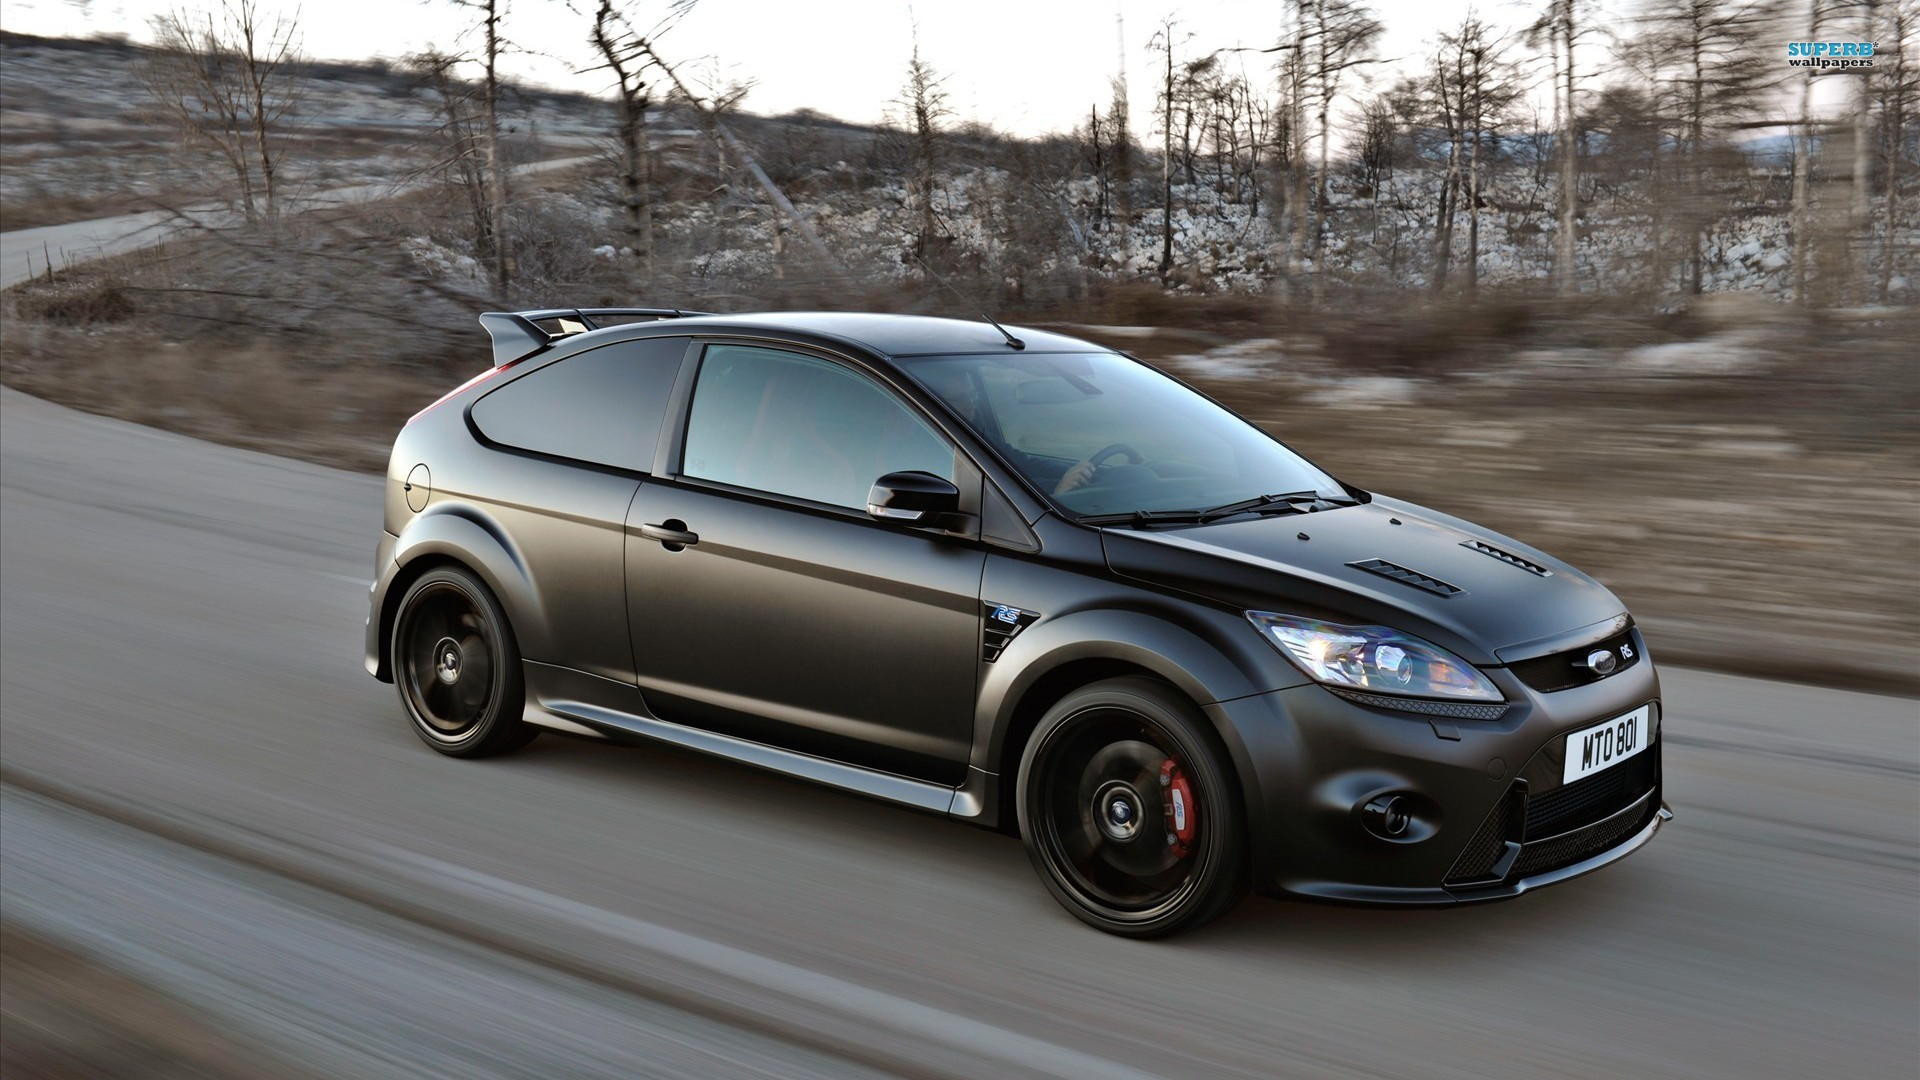 20 Ford Focus Rs Hd Wallpapers Backgrounds Wallpaper Abyss